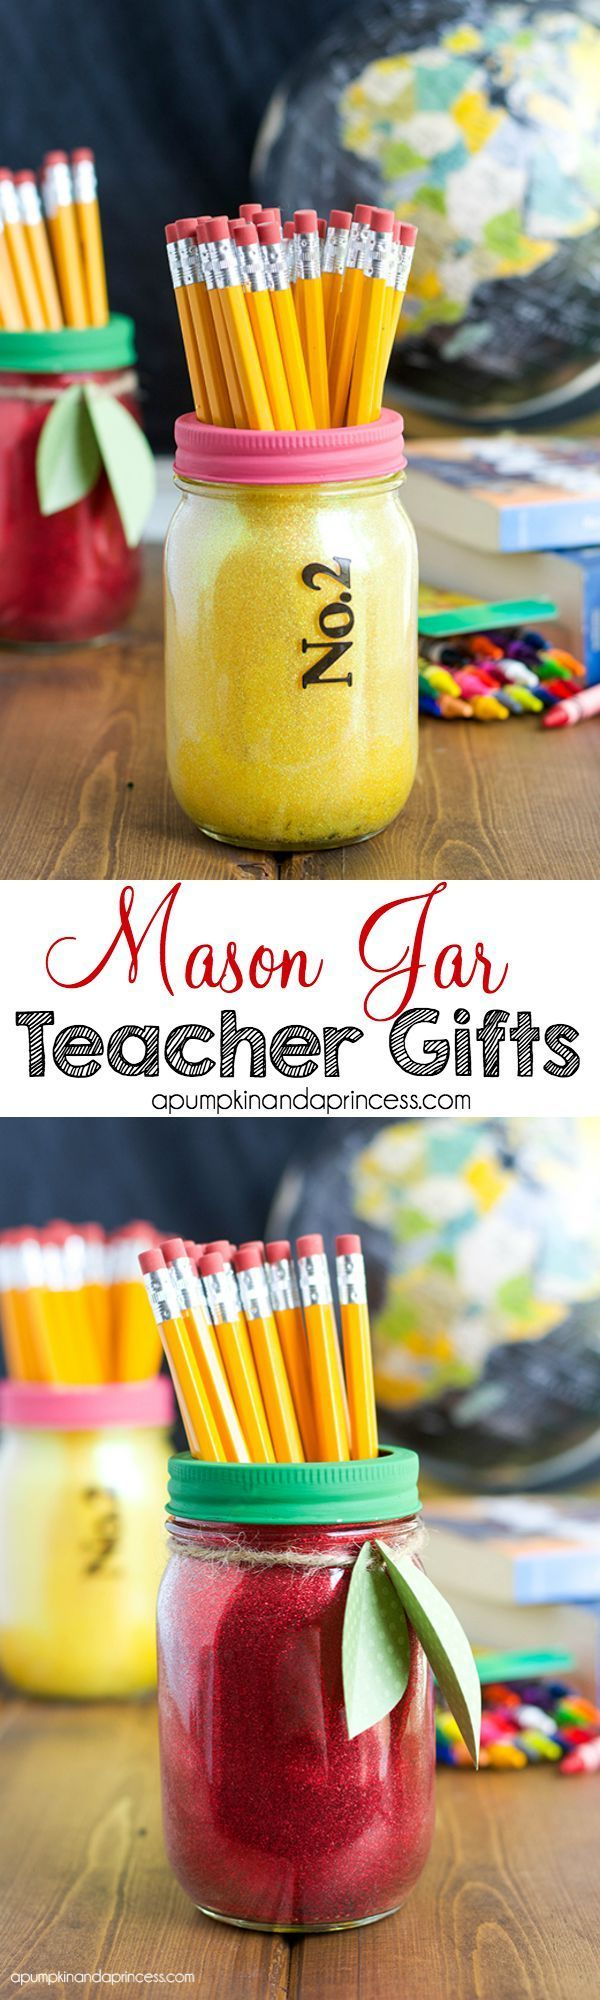 130 best teacher gifts images on pinterest teacher appreciation glitter mason jar teacher gifts teacher gift diypreschool solutioingenieria Image collections